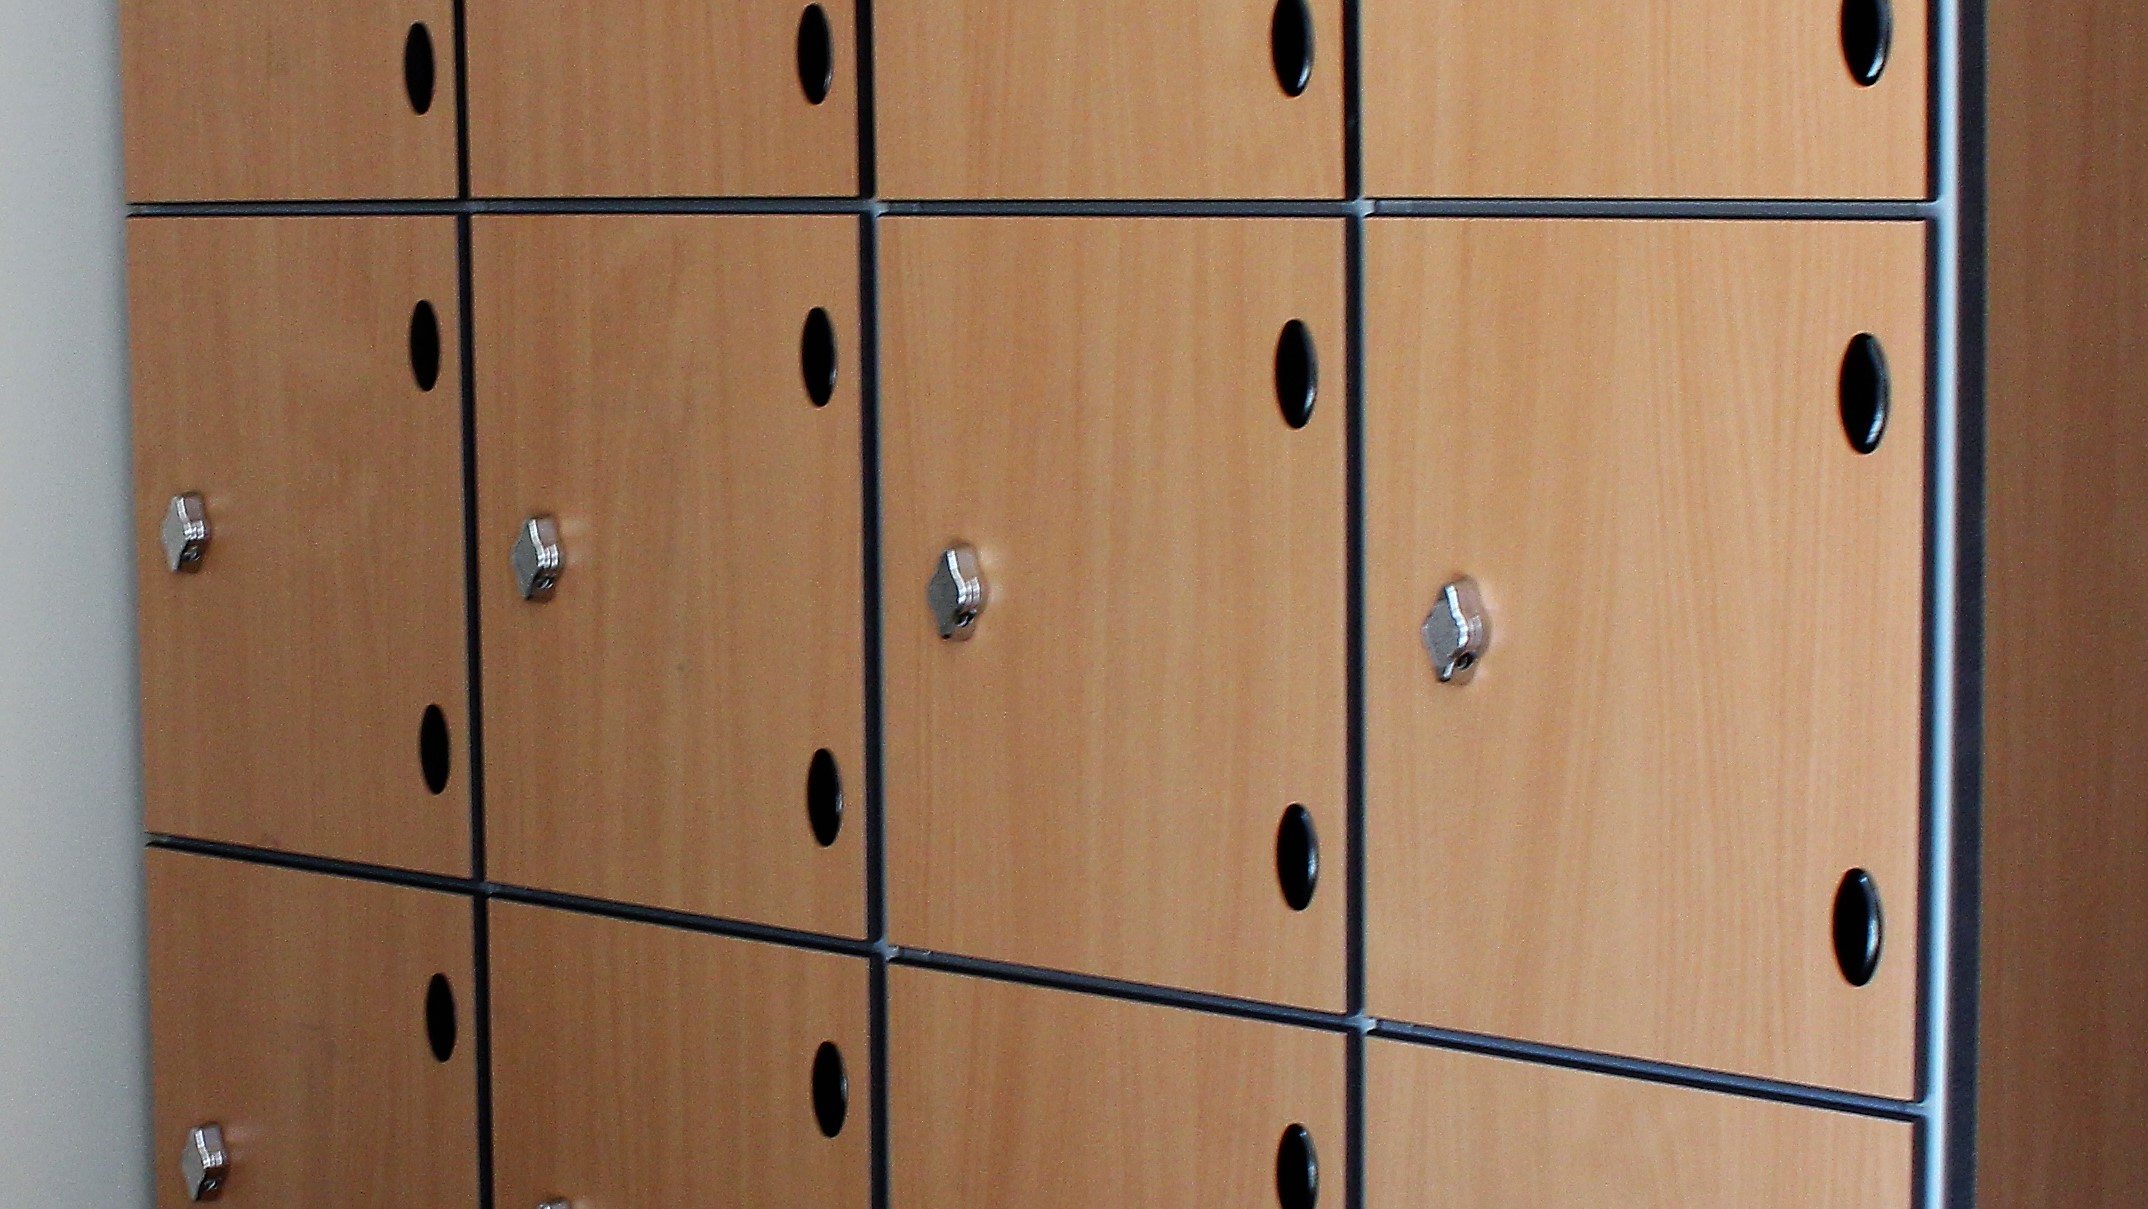 Wooden lockers are on the way out wood effect lockers are the way to go! - Lockertek